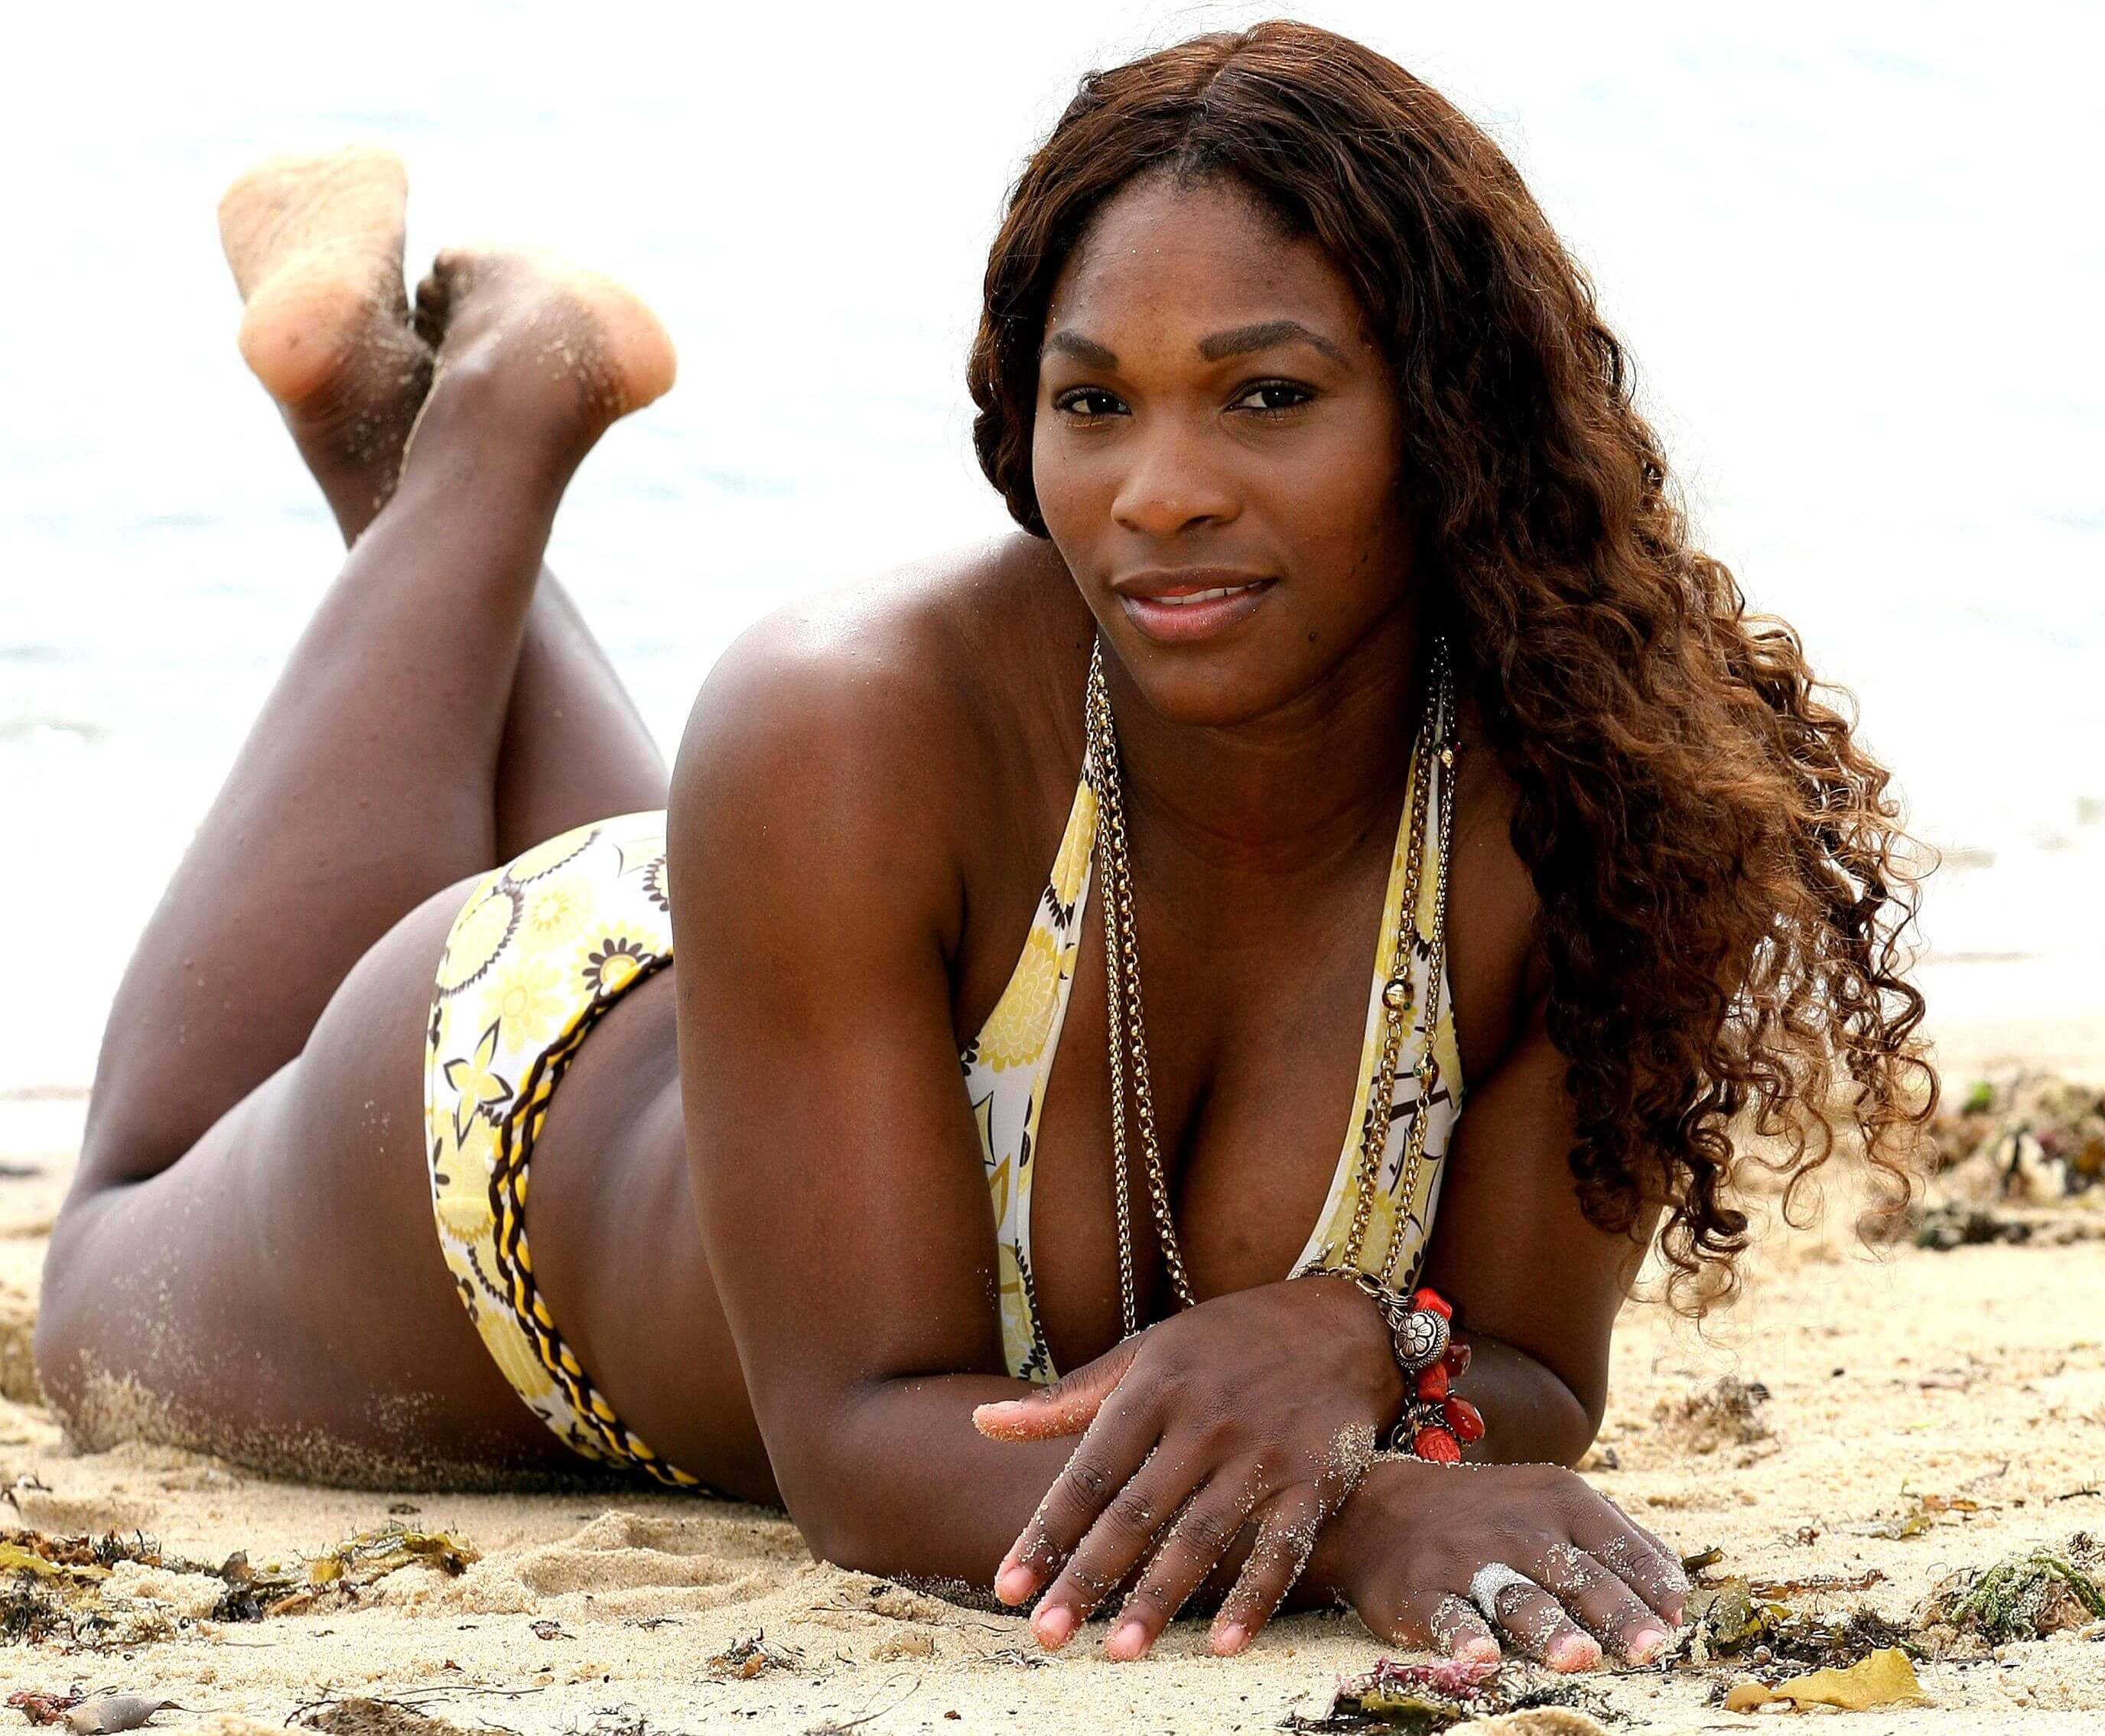 Serena Williams hoot butts pic